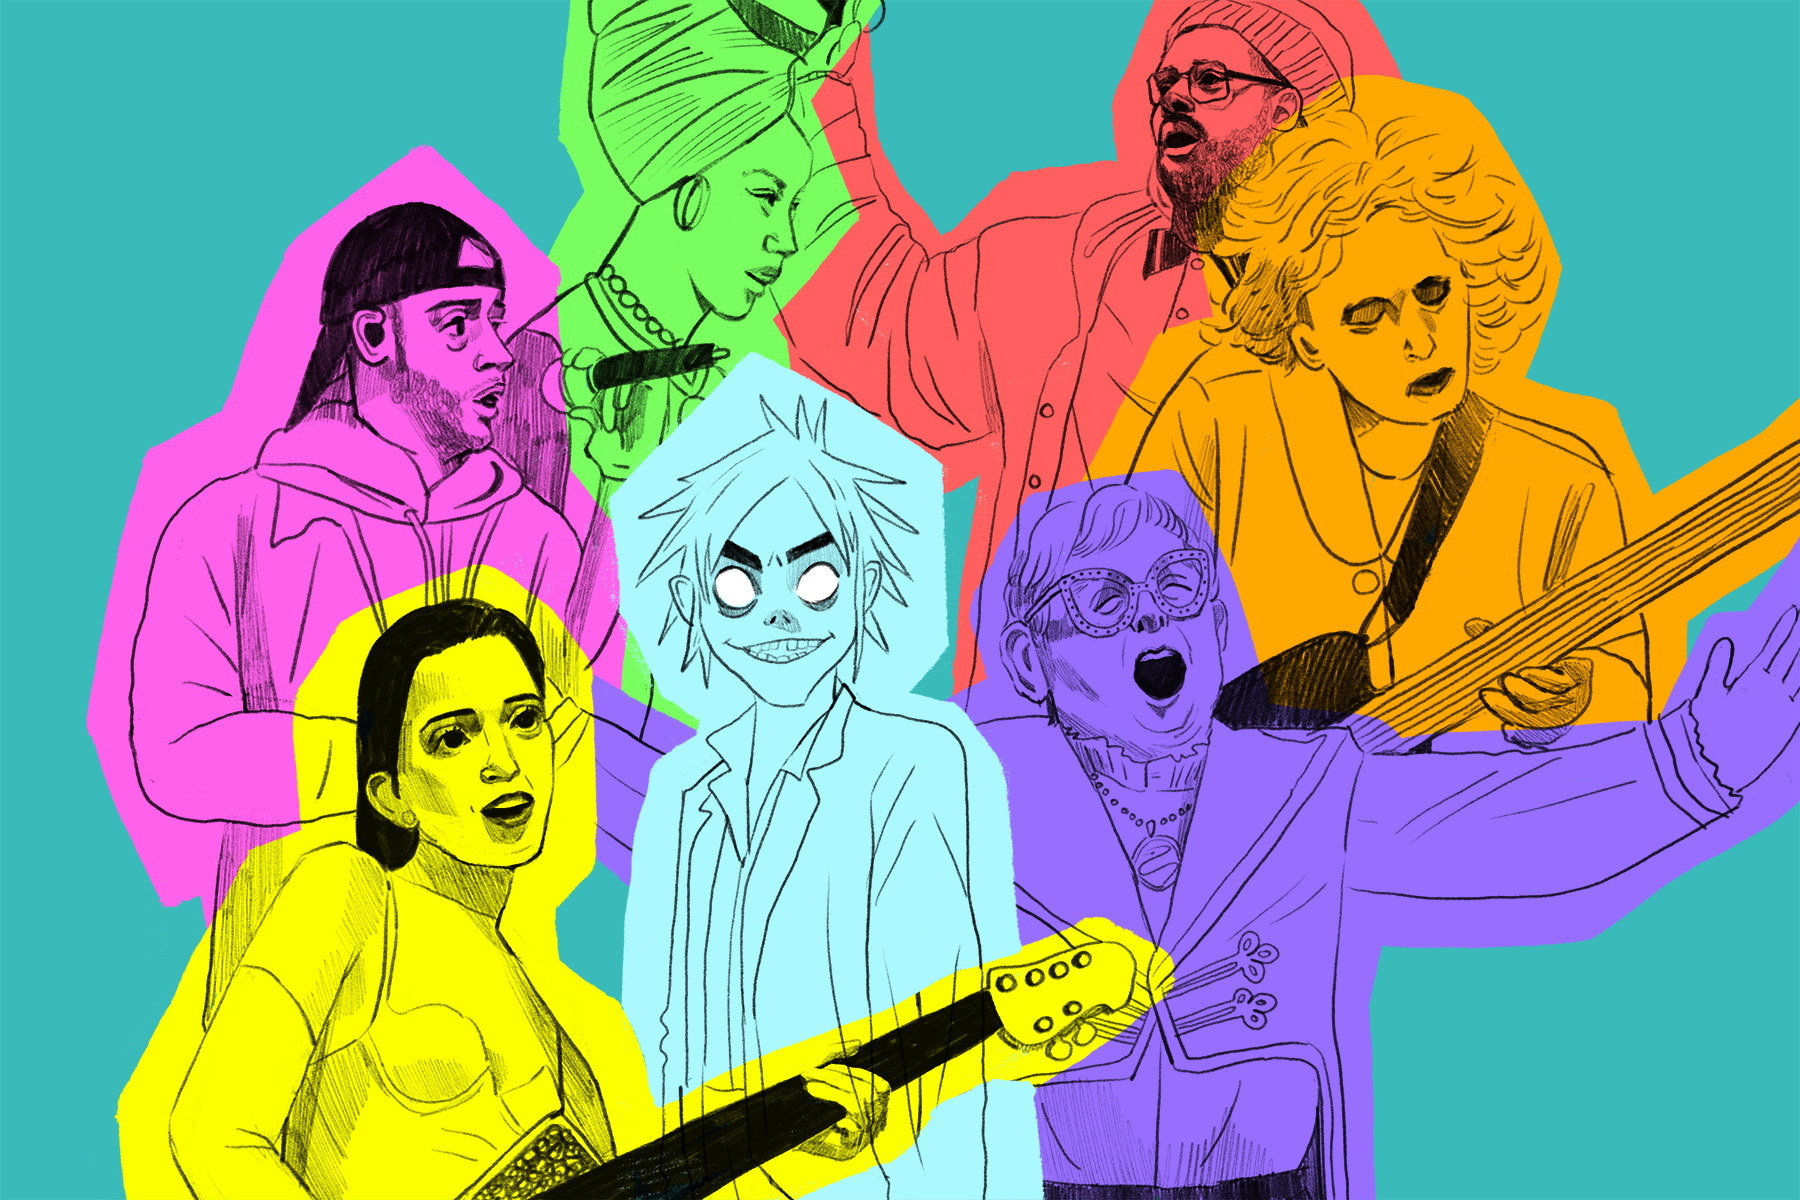 An illustration of the virtual band Gorillaz